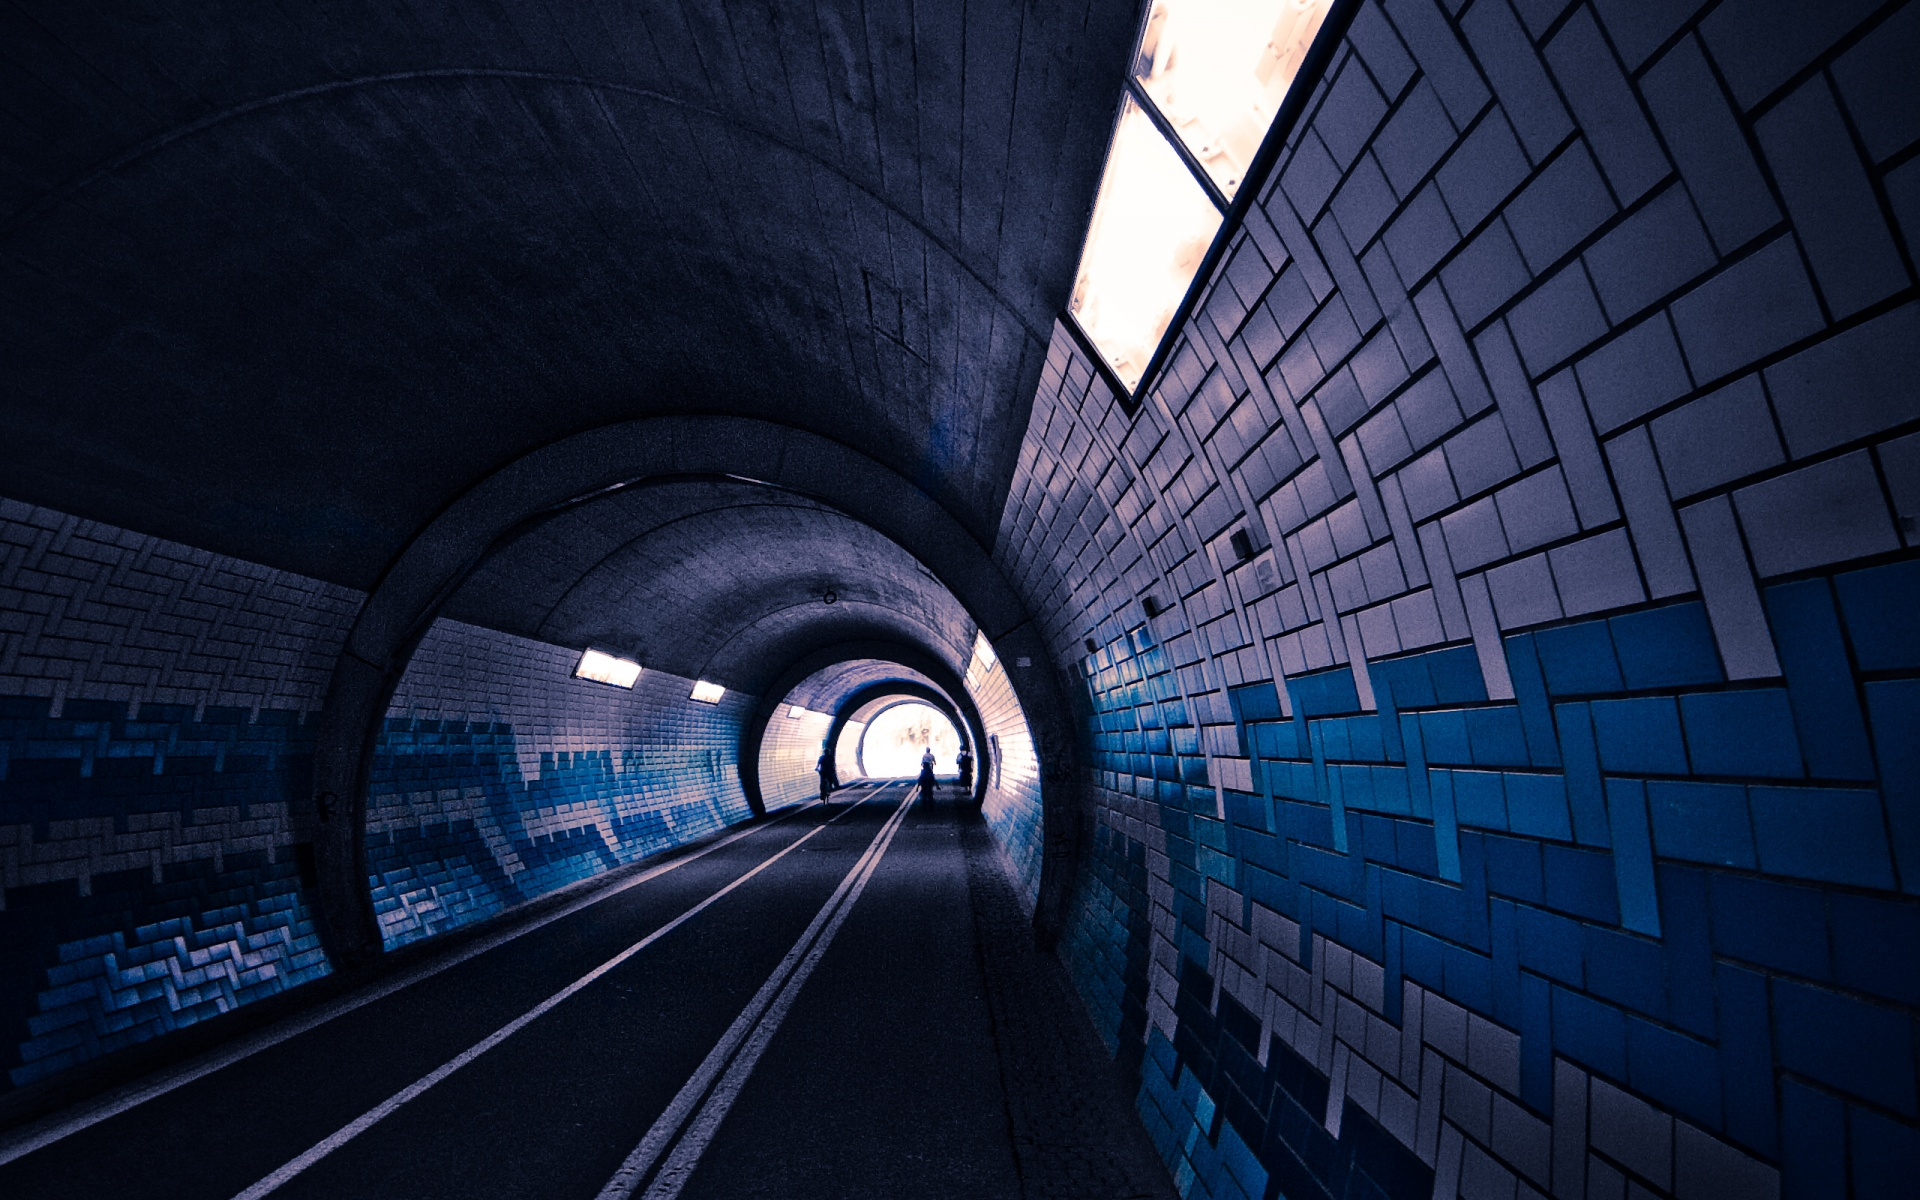 Tunnel Wallpaper